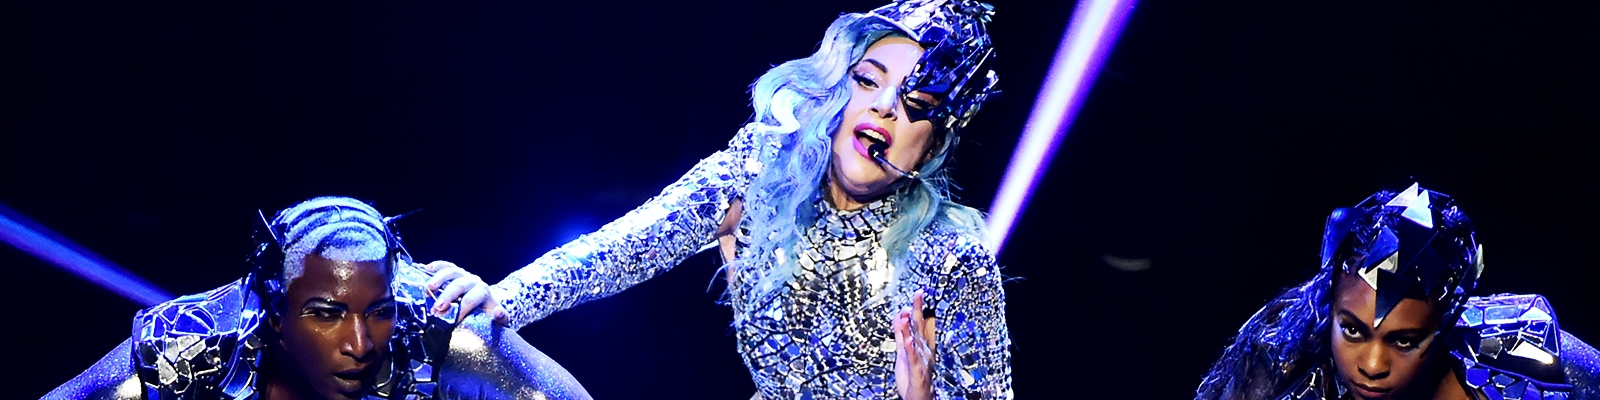 Lady Gaga's Emotional, Club-Ready 'Chromatica' Is A Return To Form